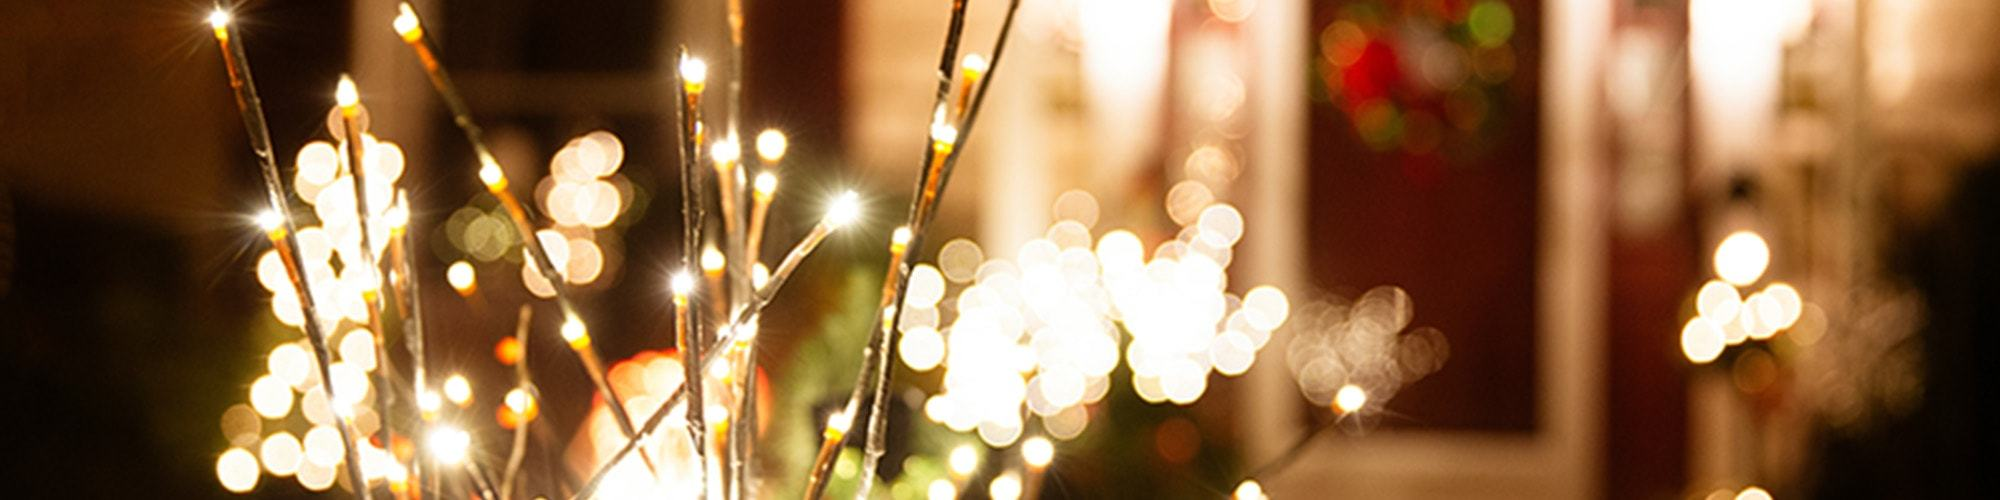 12 Ways to Use Christmas Decor All Year: Holiday Decorations are Appropriate for All Seasons